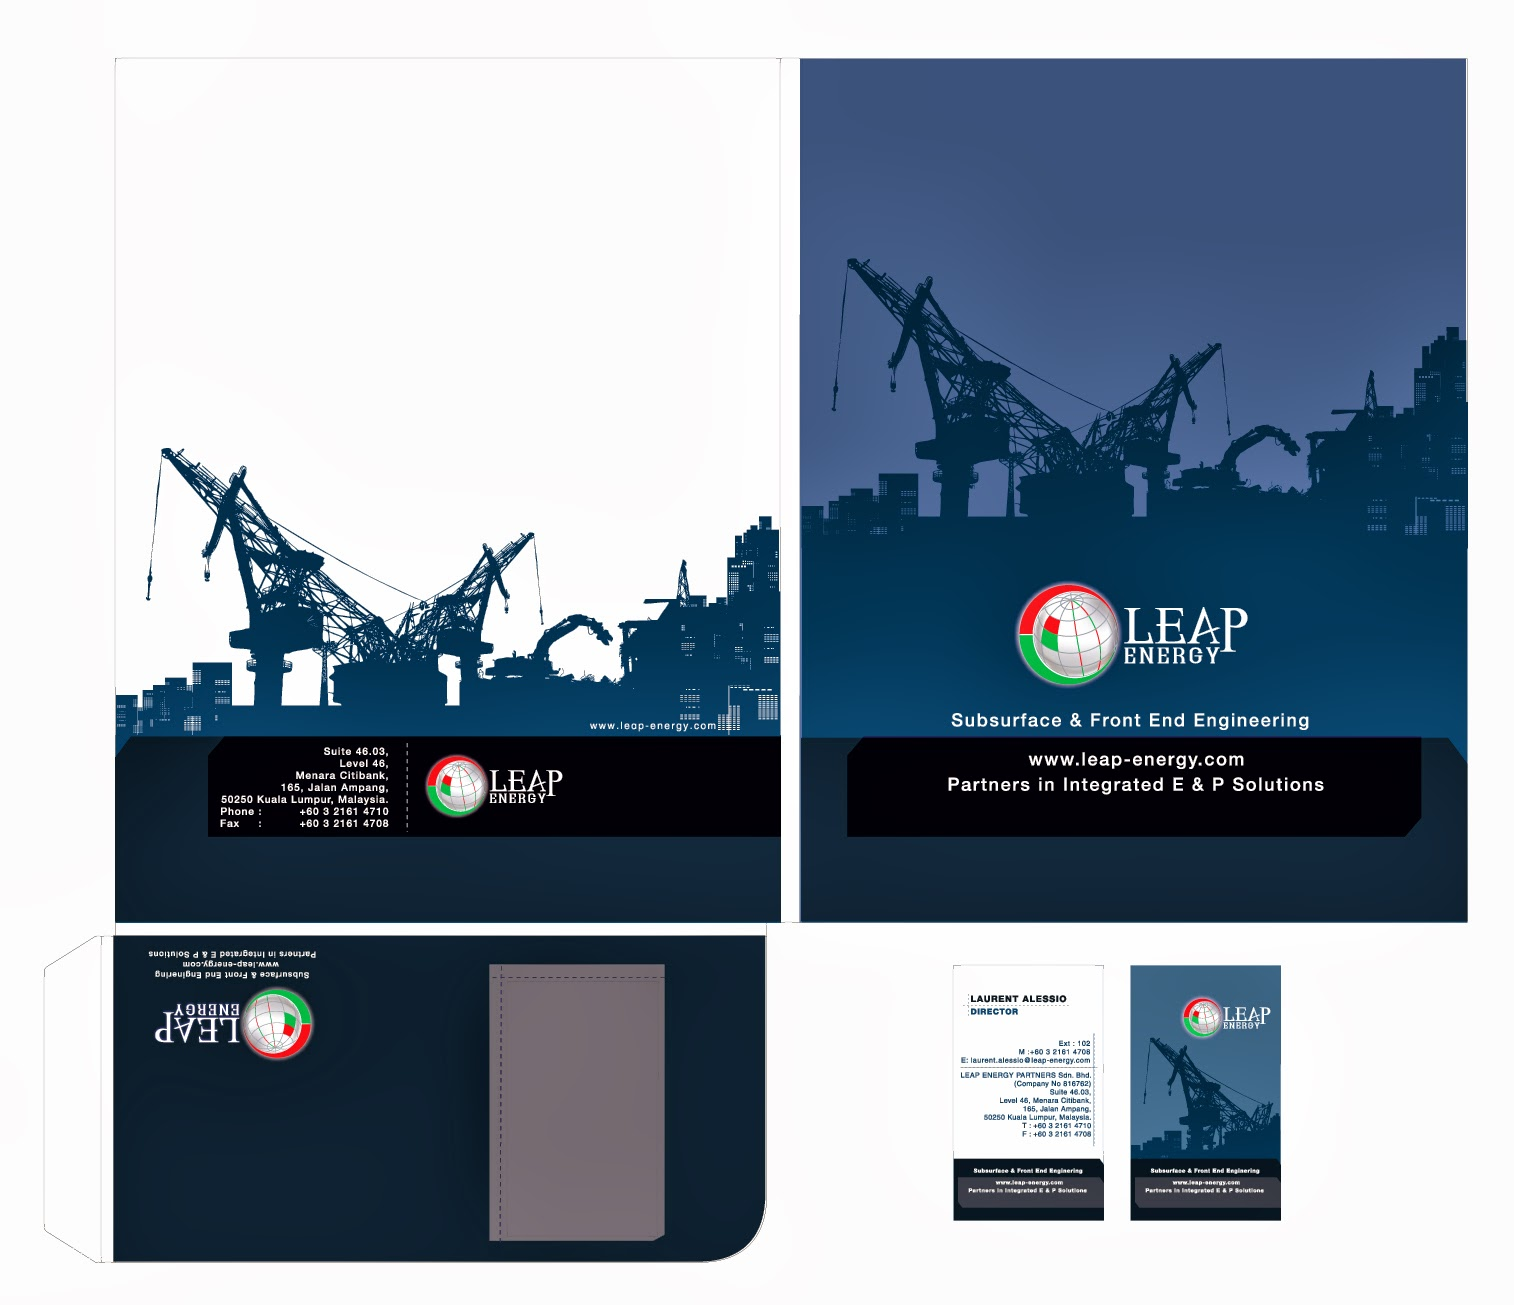 K s design Leap Energy business card & file folder